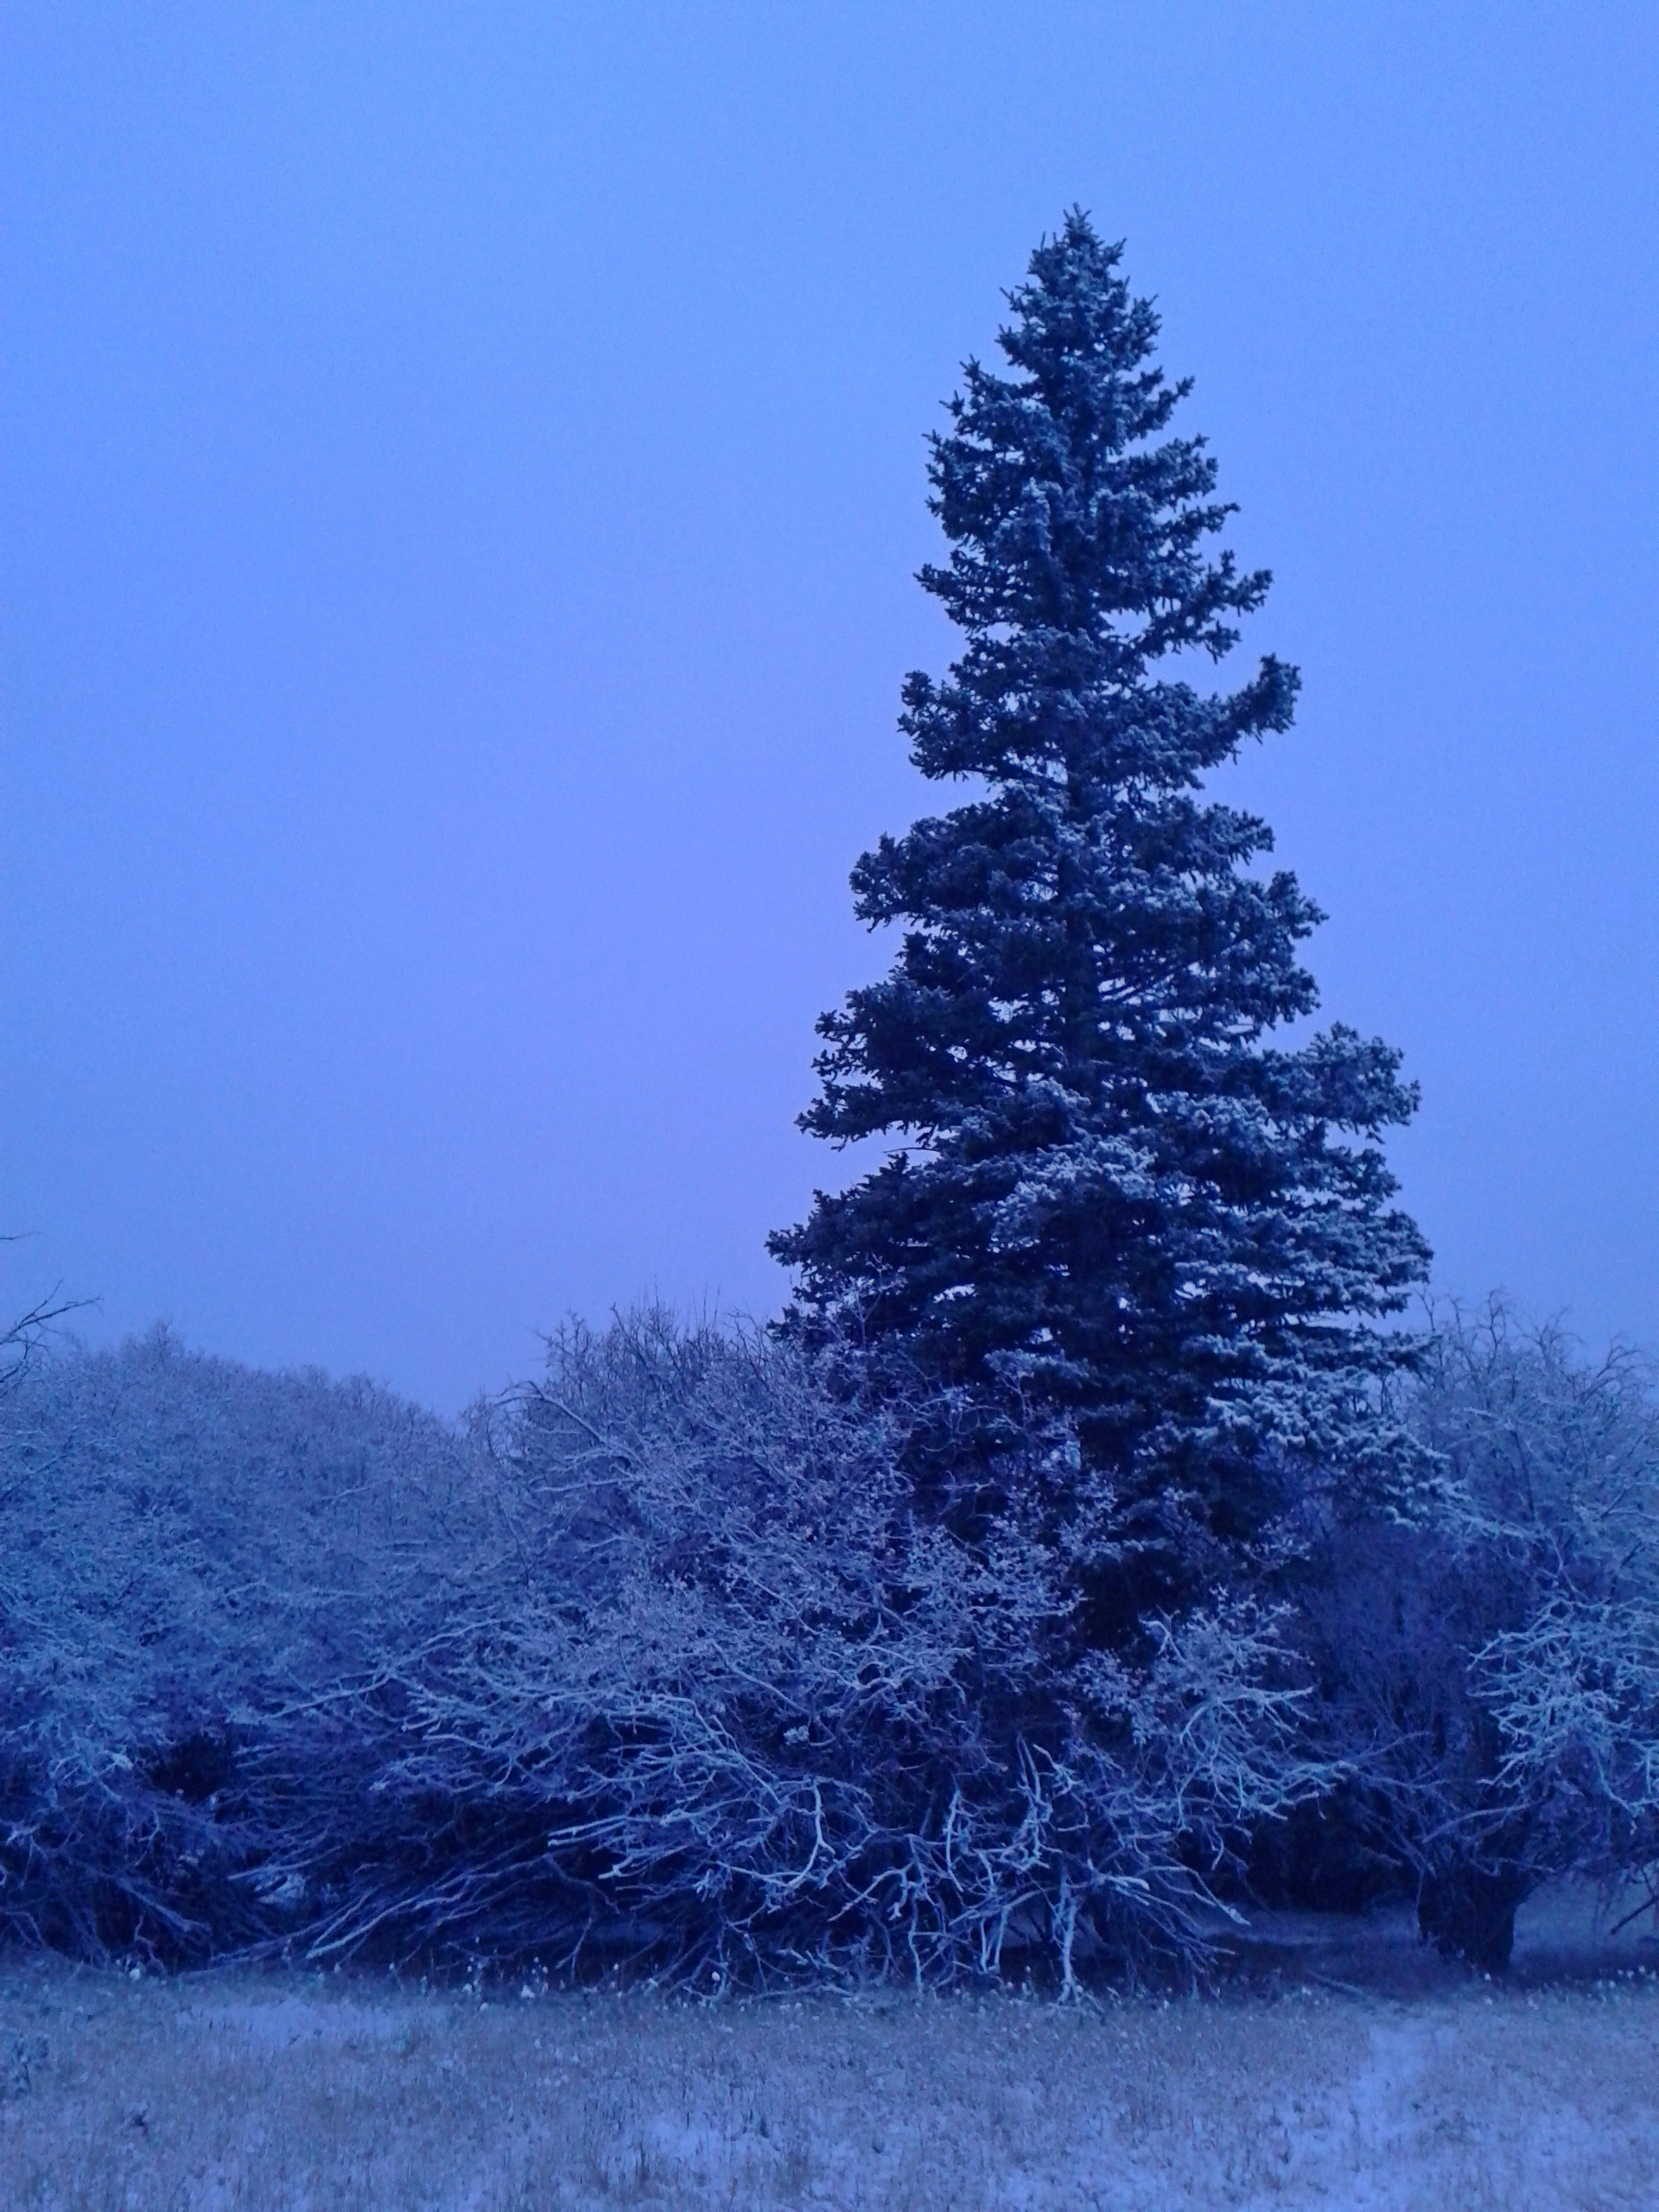 Conifers look good in the snow.